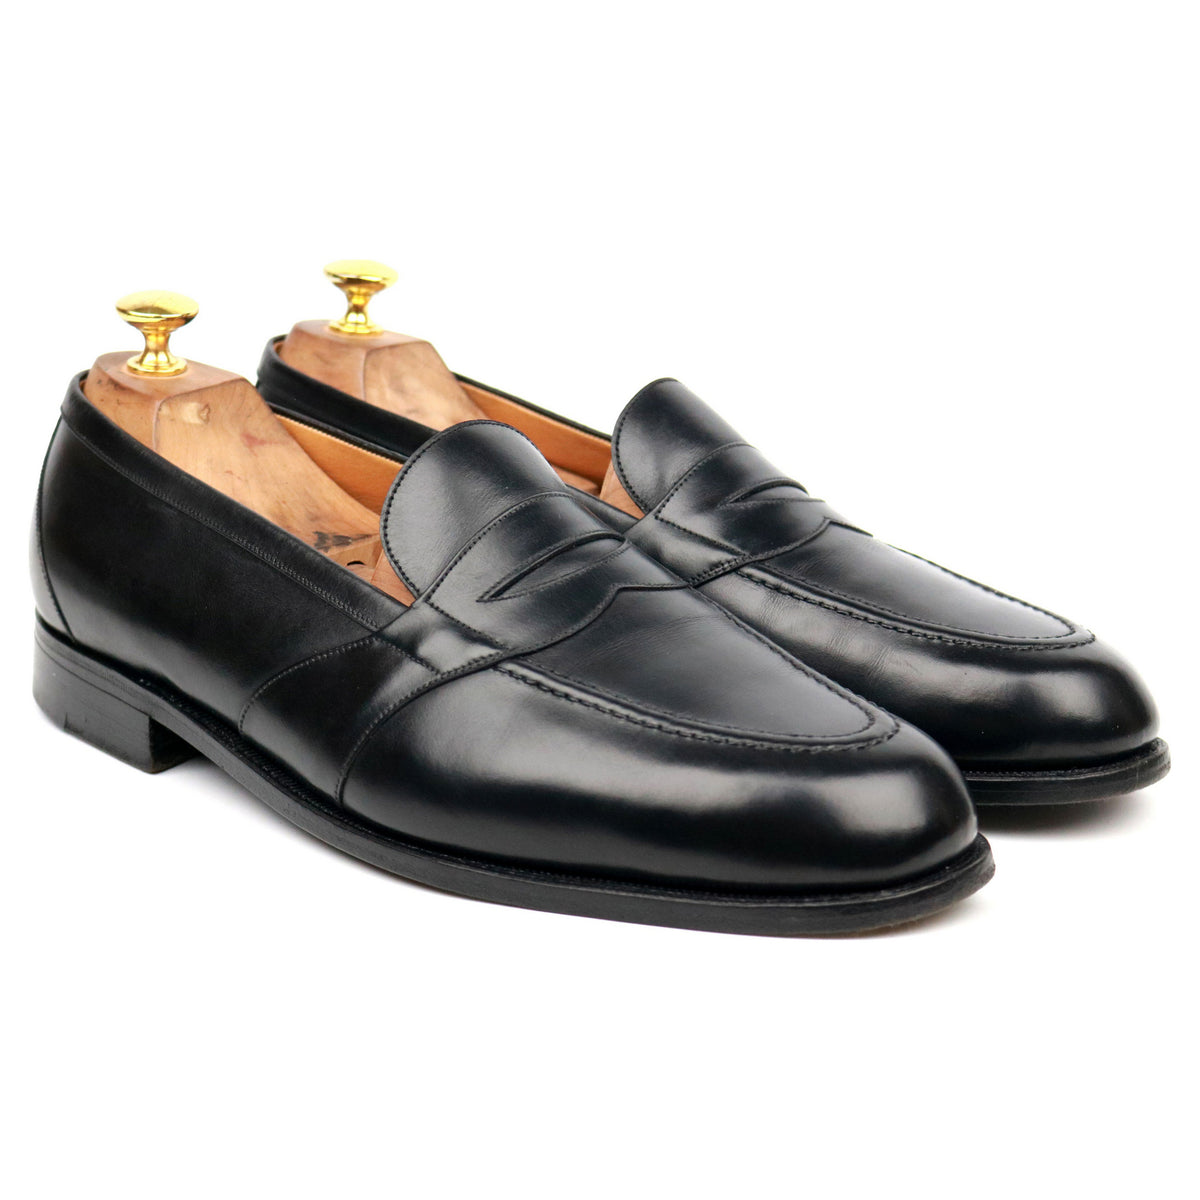 J.M. Weston Black Leather Loafers 10.5 D UK 11